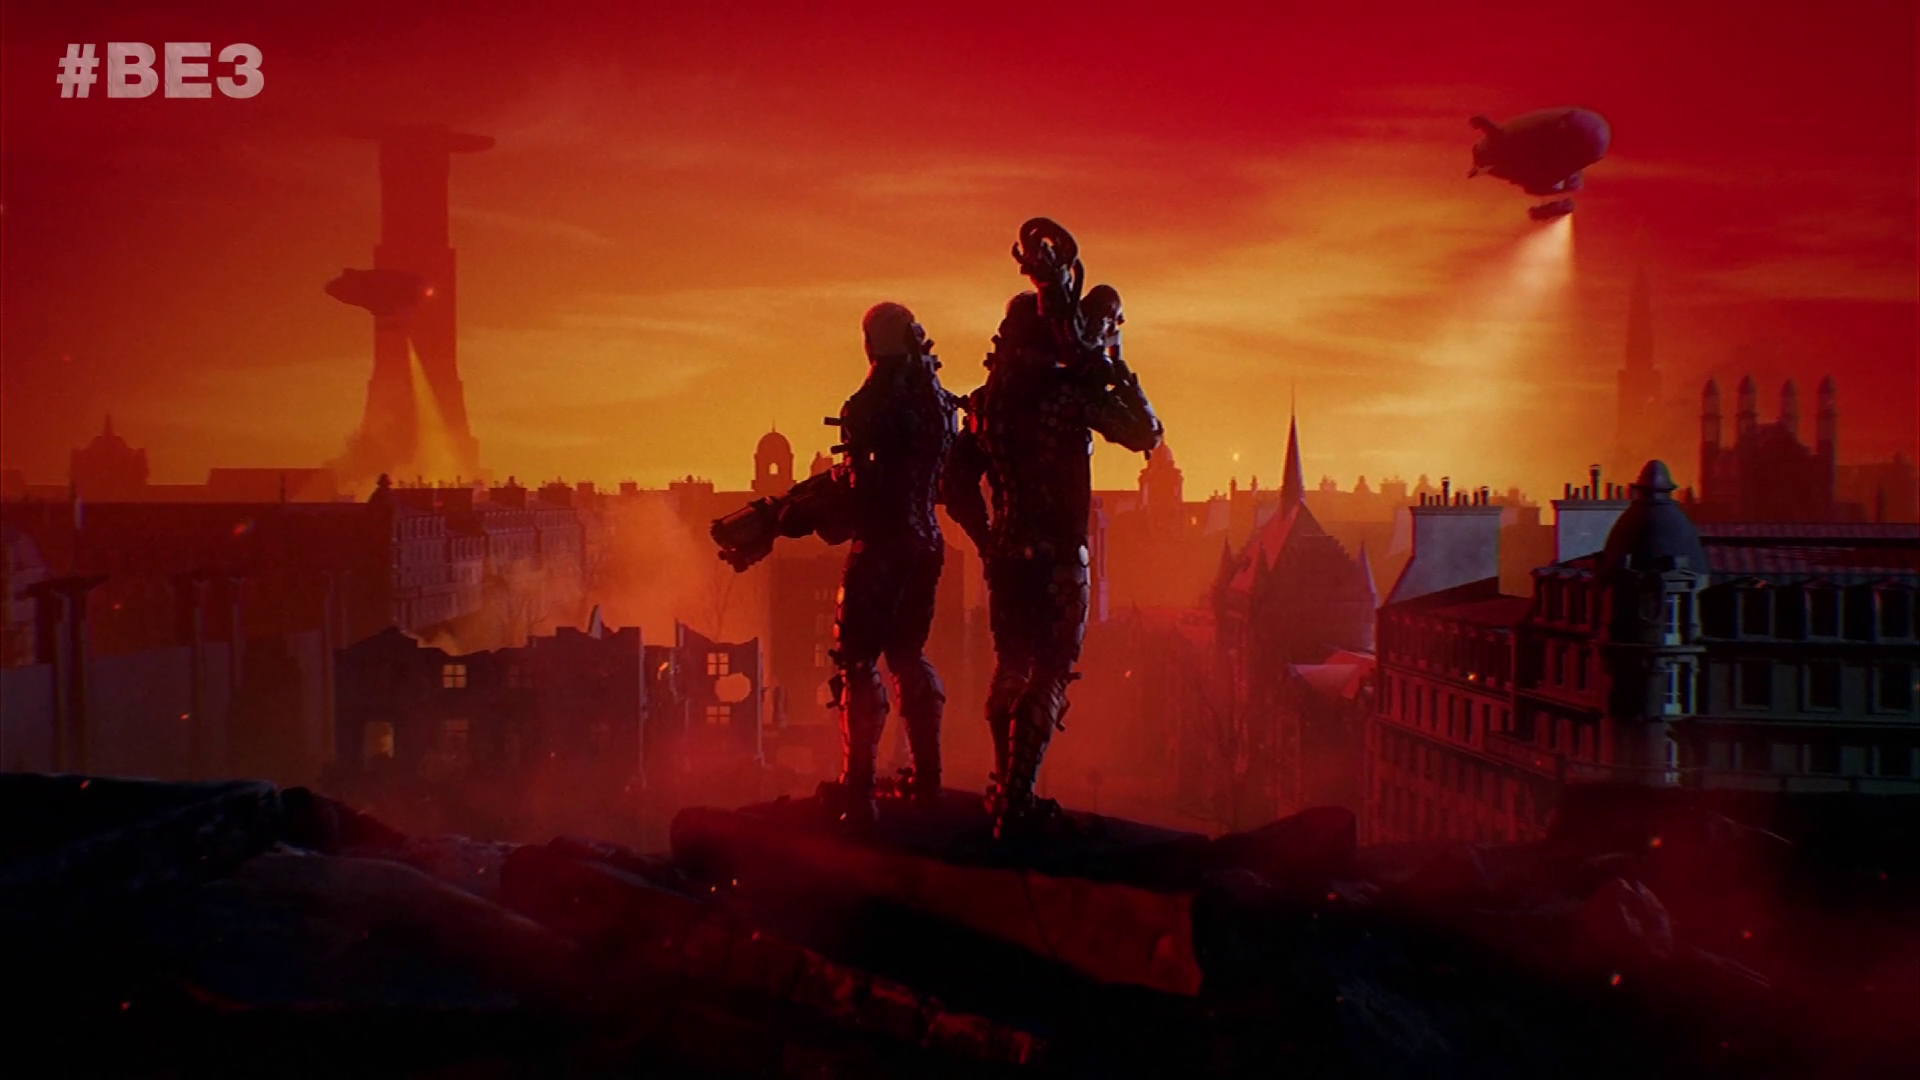 New Wolfenstein games will be released with uncensored Nazi imagery in Germany